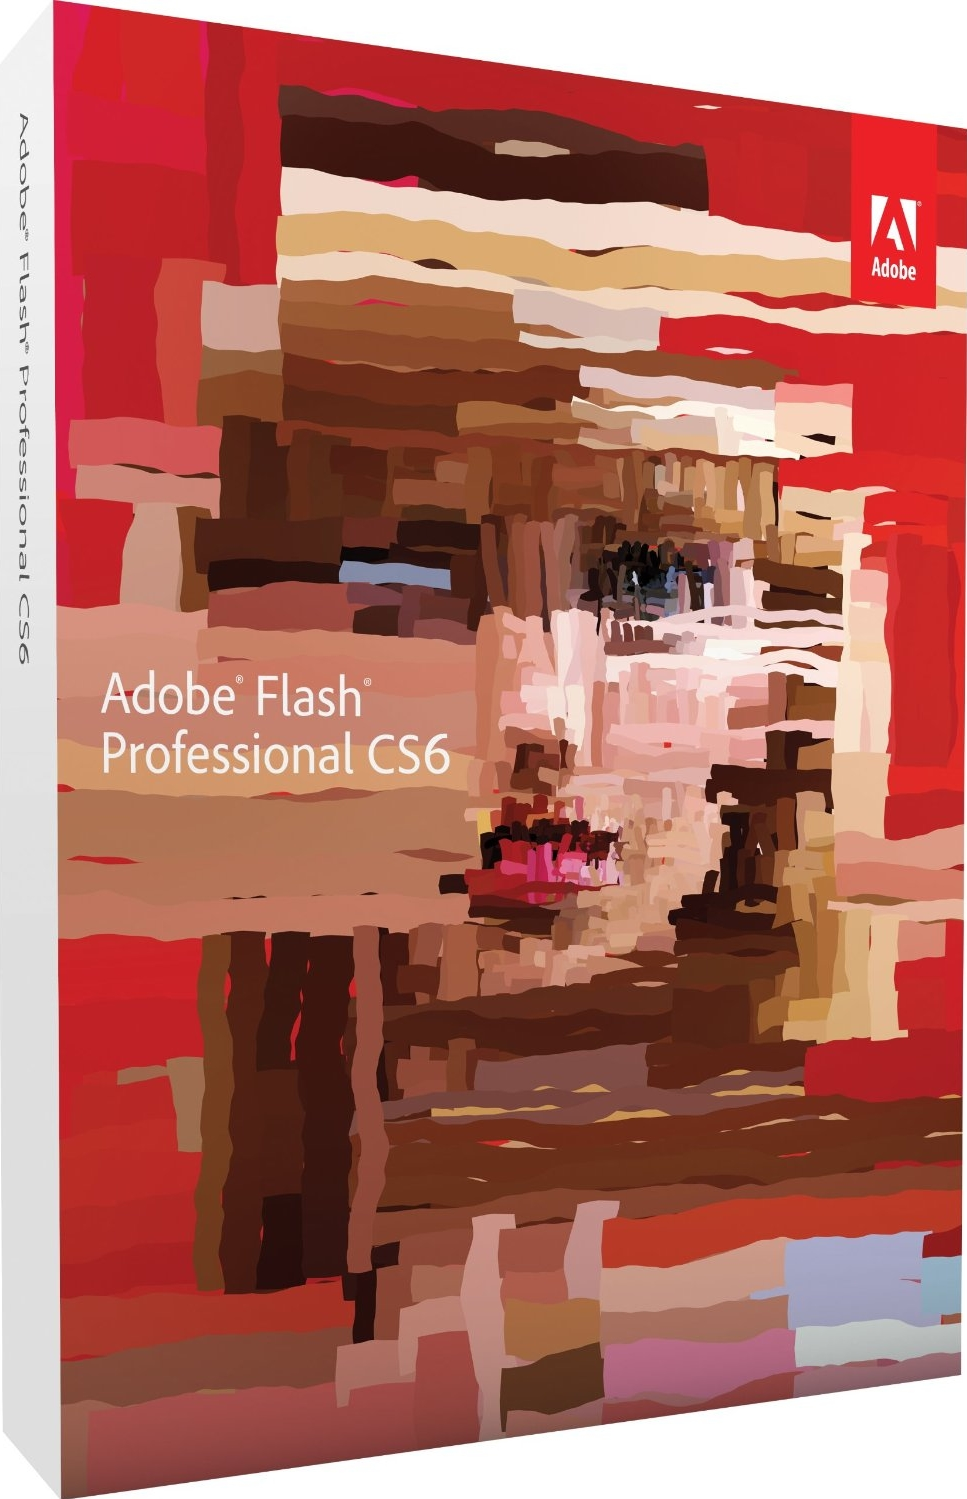 Adobe Flash Professional CS6 software is a powerful.